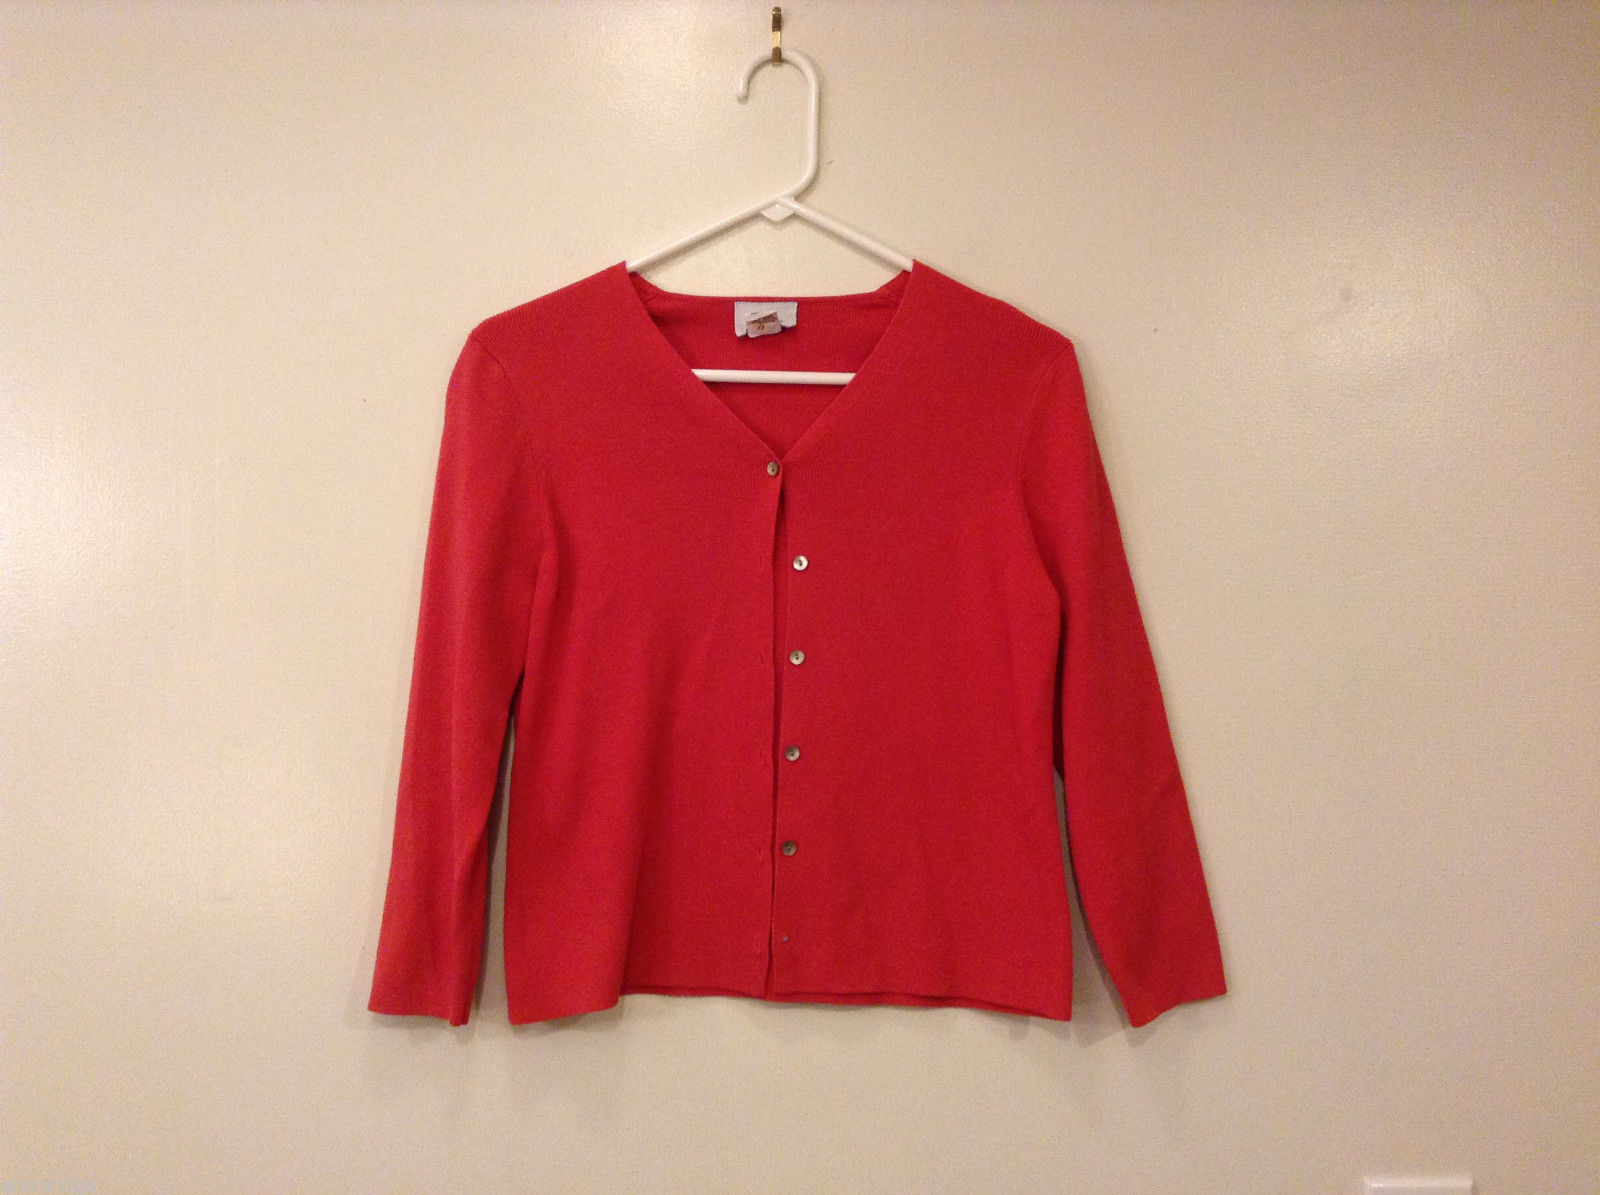 Anne Taylor LOFT Women's Cardigan Sweater Vibrant Red V-Neck Button-Down Front